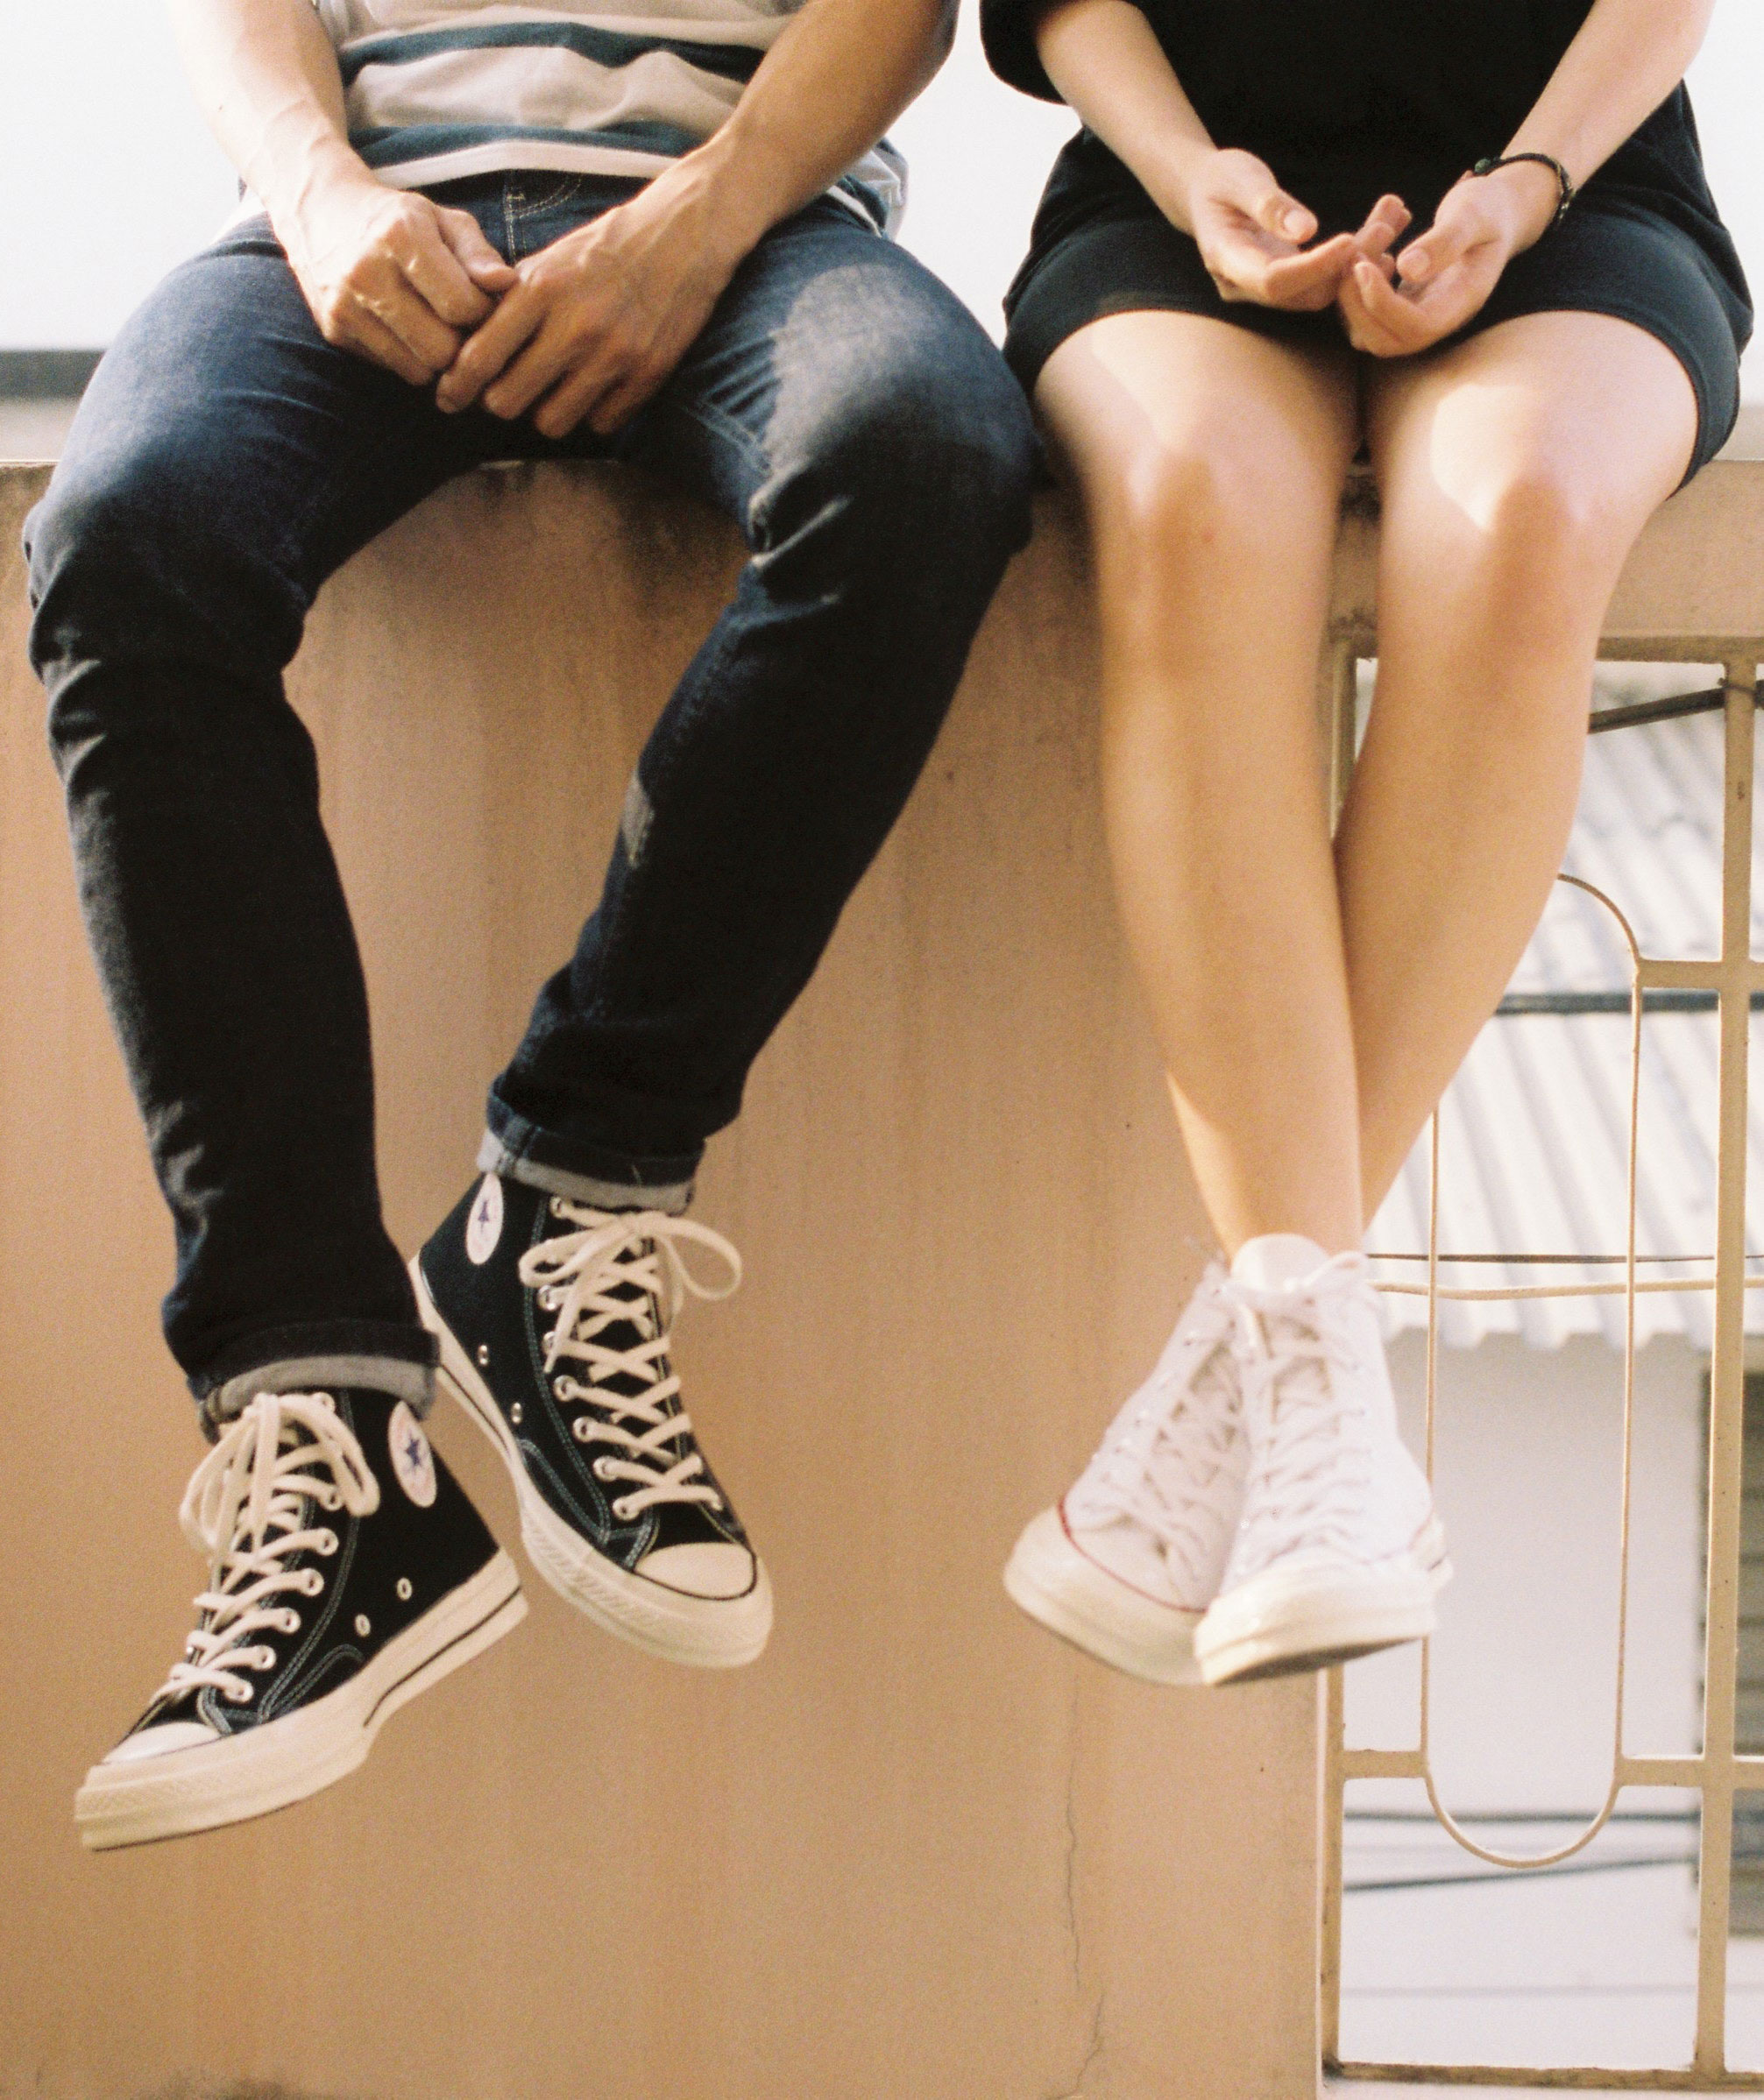 Legs in sneakers dangling from high surface as couple talks.